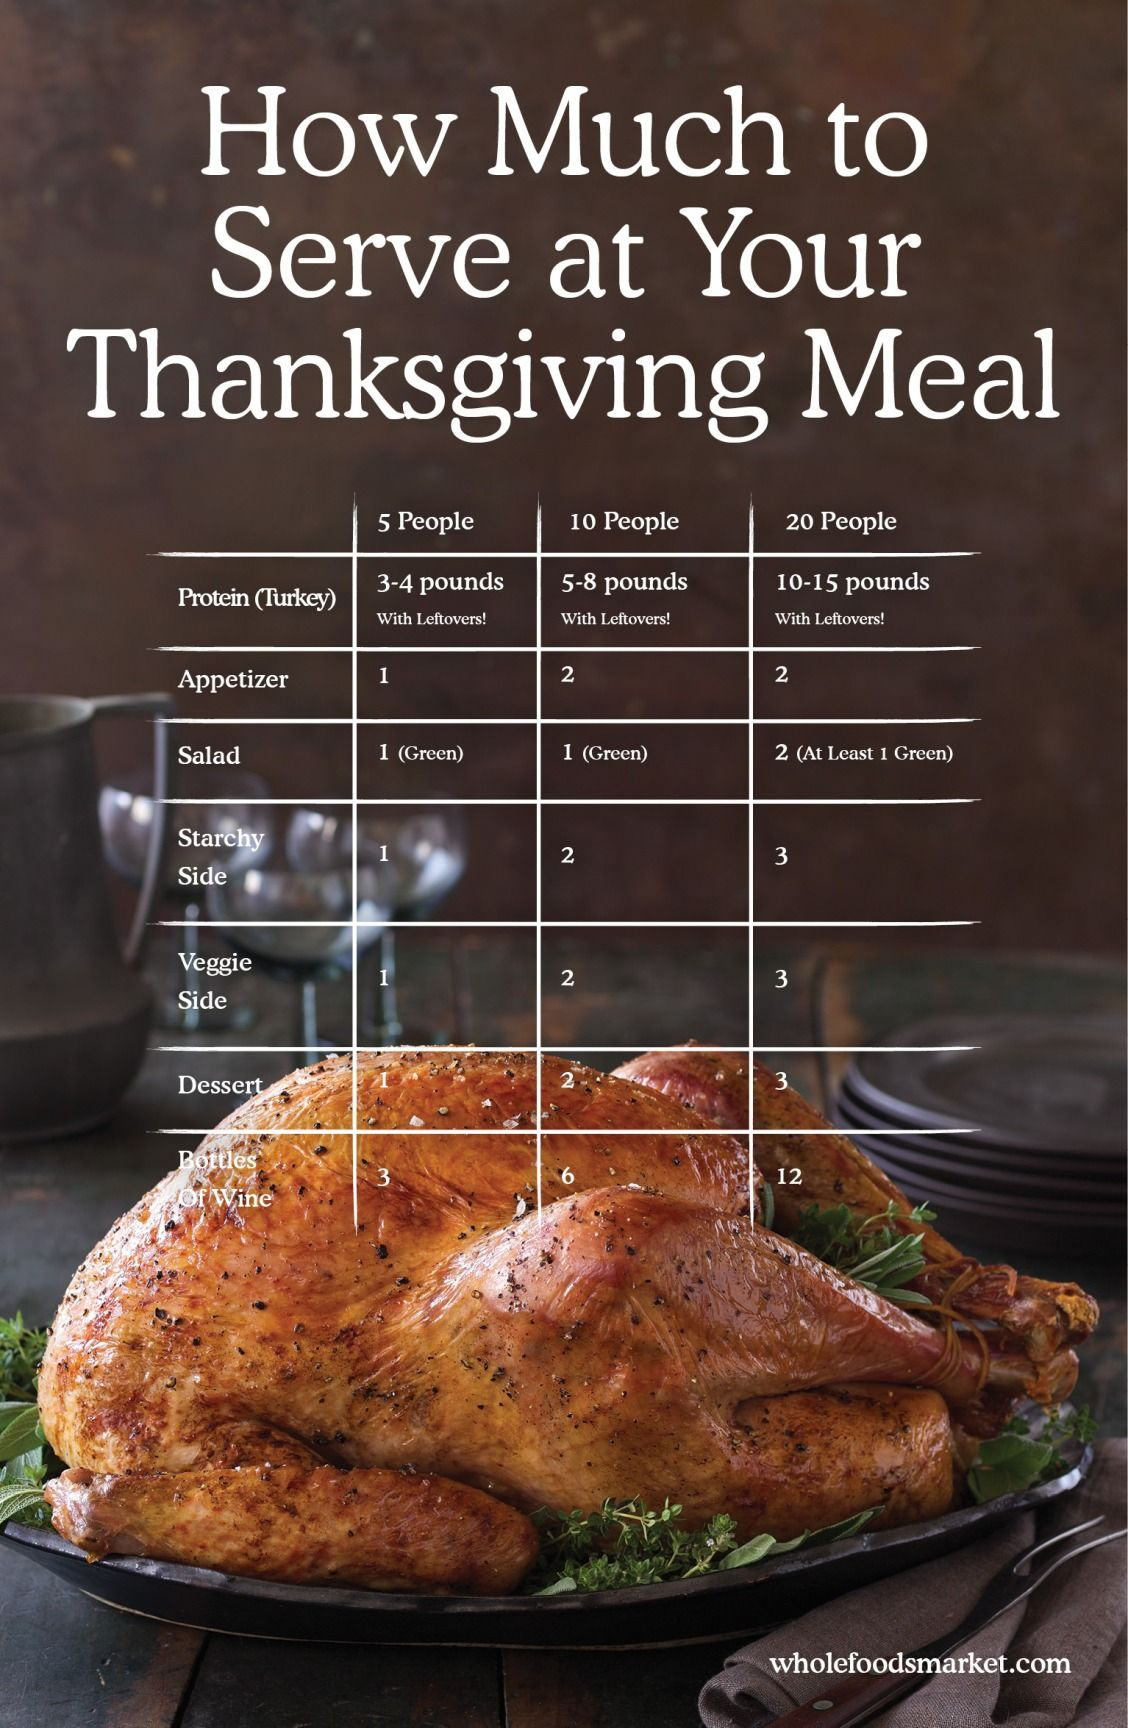 Servings calculator calculator thanksgiving and meals how much to serve at your thanksgiving meal servings calculator whole foods forumfinder Images